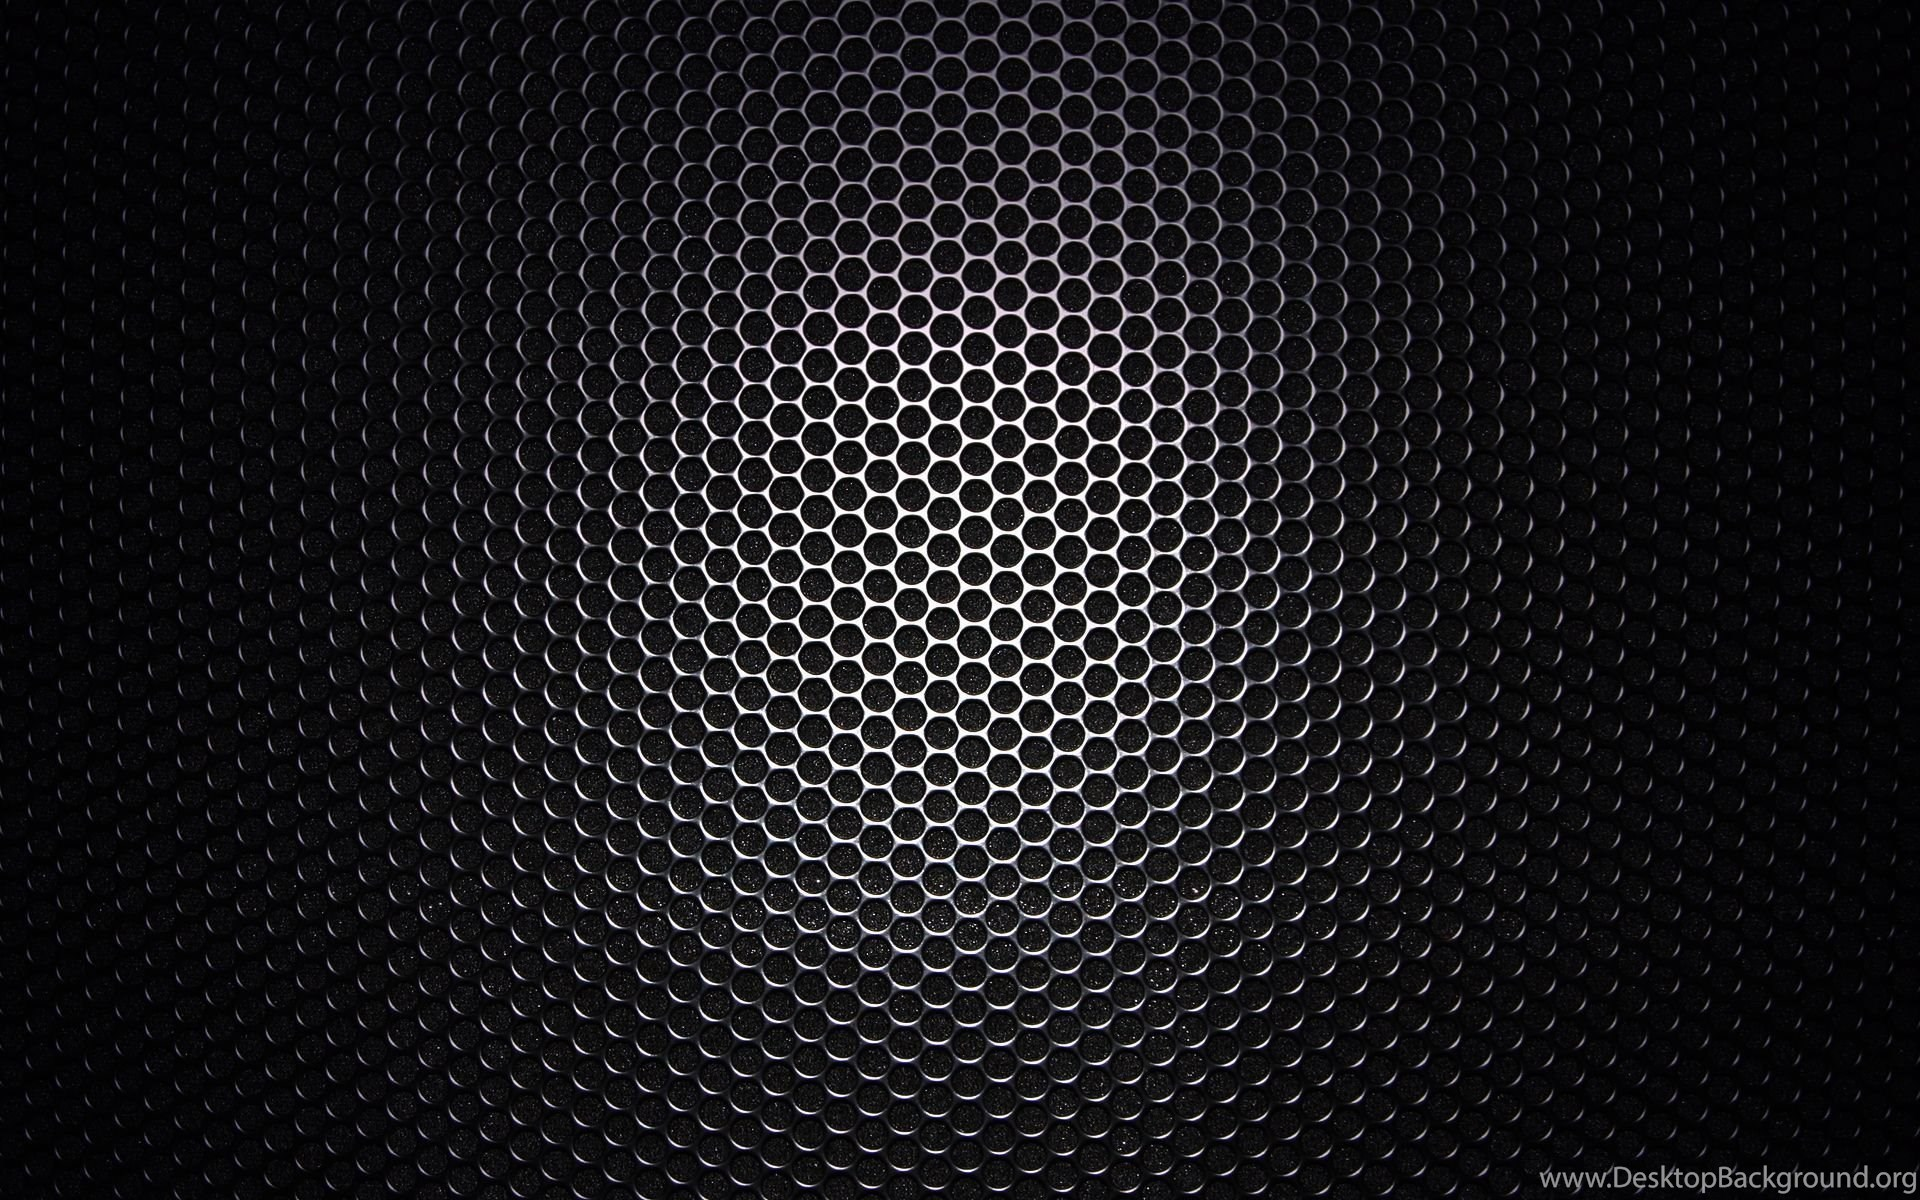 Dj black backgrounds full hd wallpapers for Black wallpaper full hd